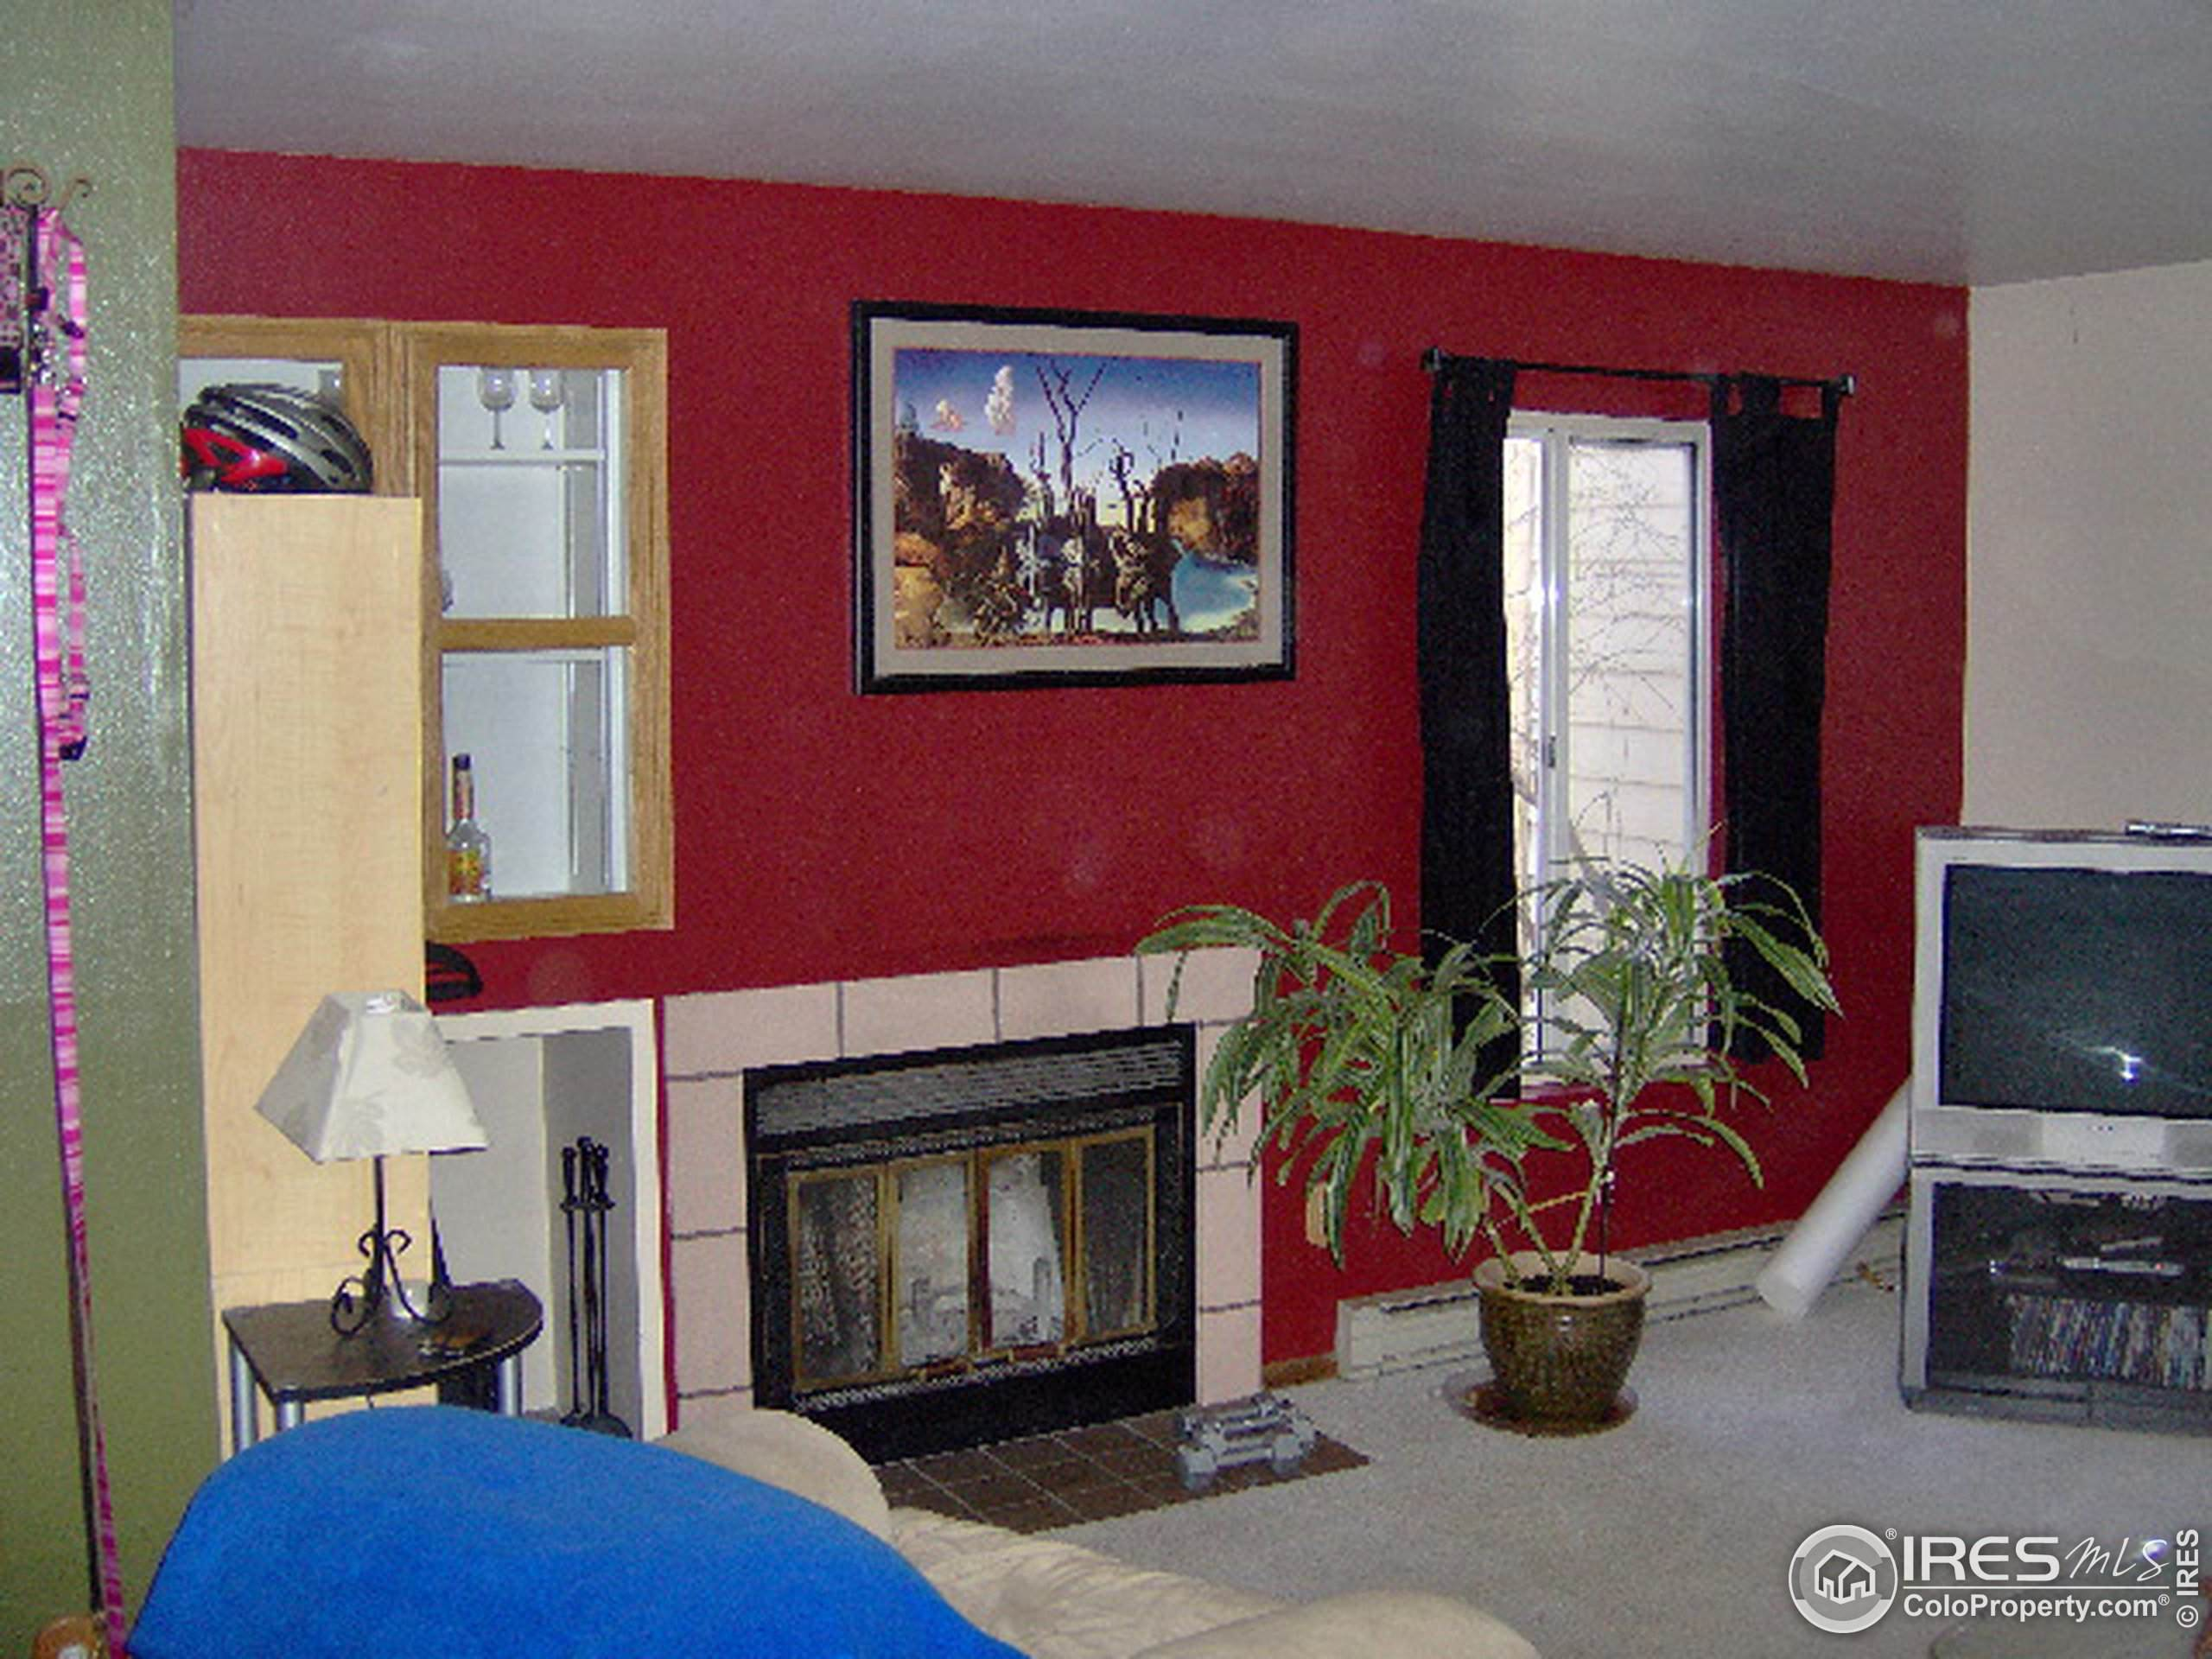 1850 Yaupon Ave C1, Boulder, CO 80304 (MLS #916277) :: Downtown Real Estate Partners